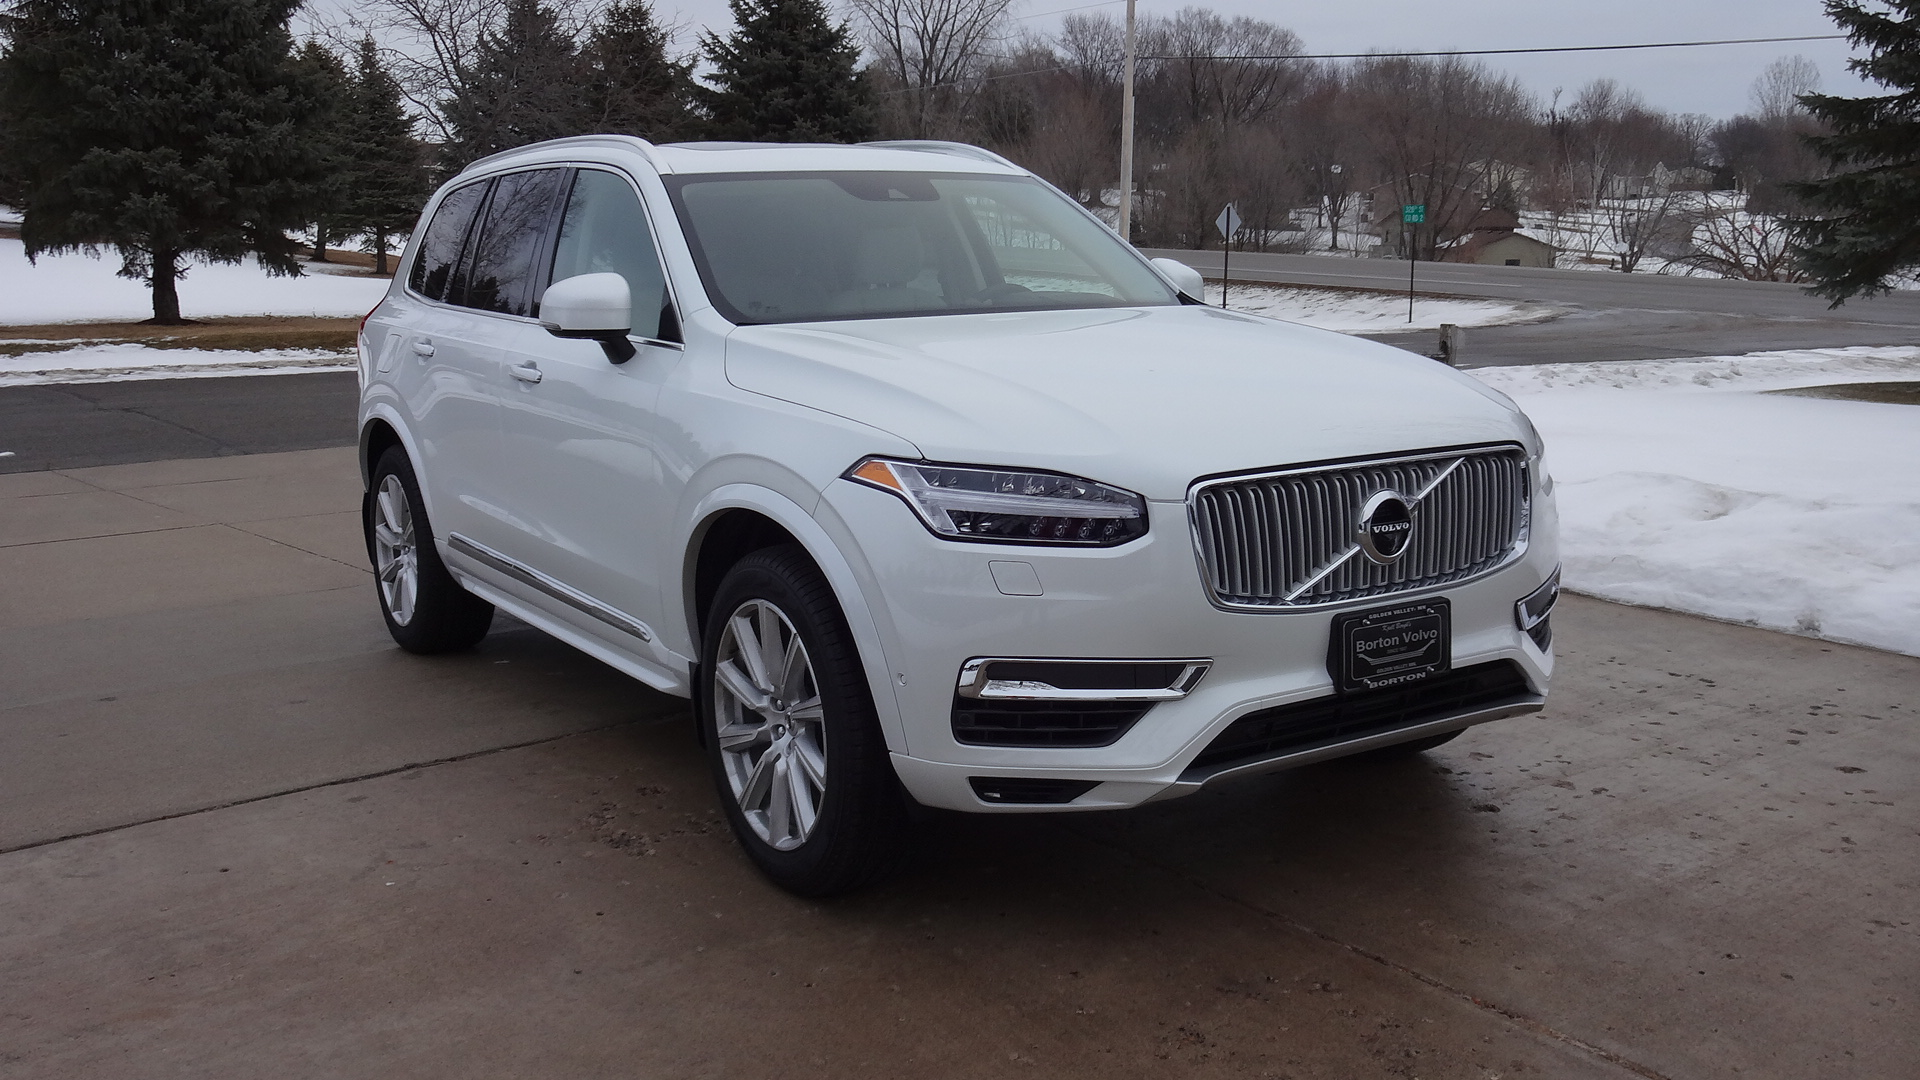 2016 volvo xc90 t8 plug in hybrid an owner 39 s first 21 days. Black Bedroom Furniture Sets. Home Design Ideas